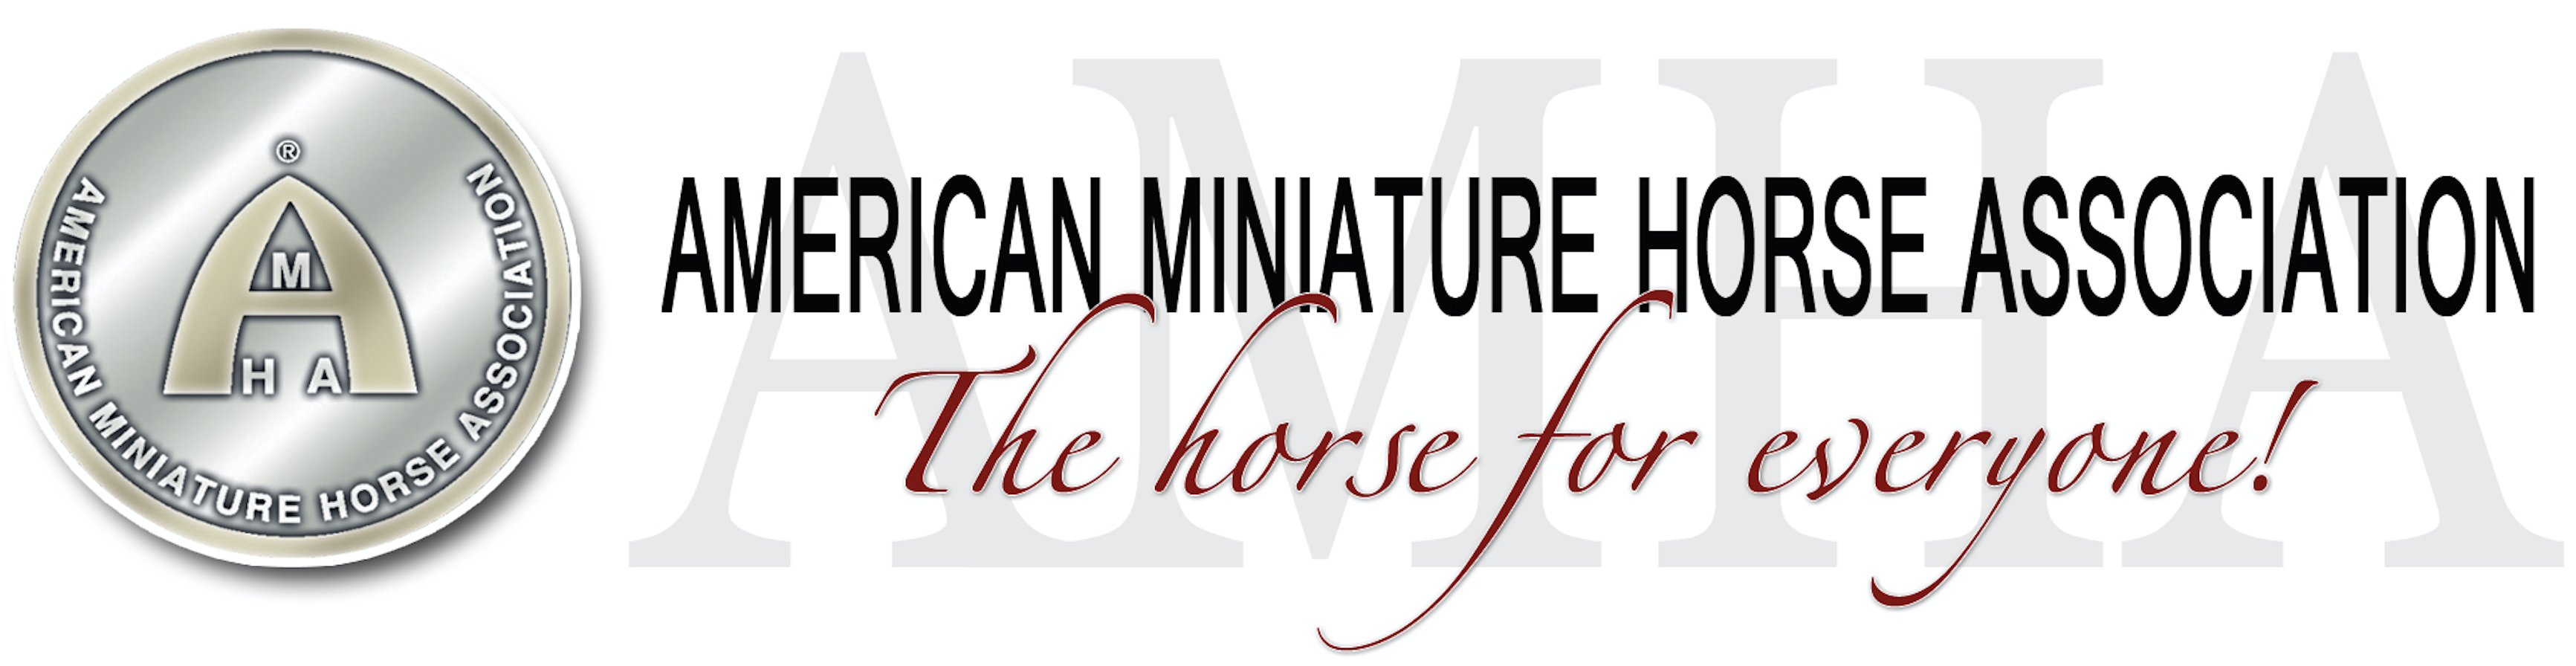 American Miniature Horse Association (AMHA)